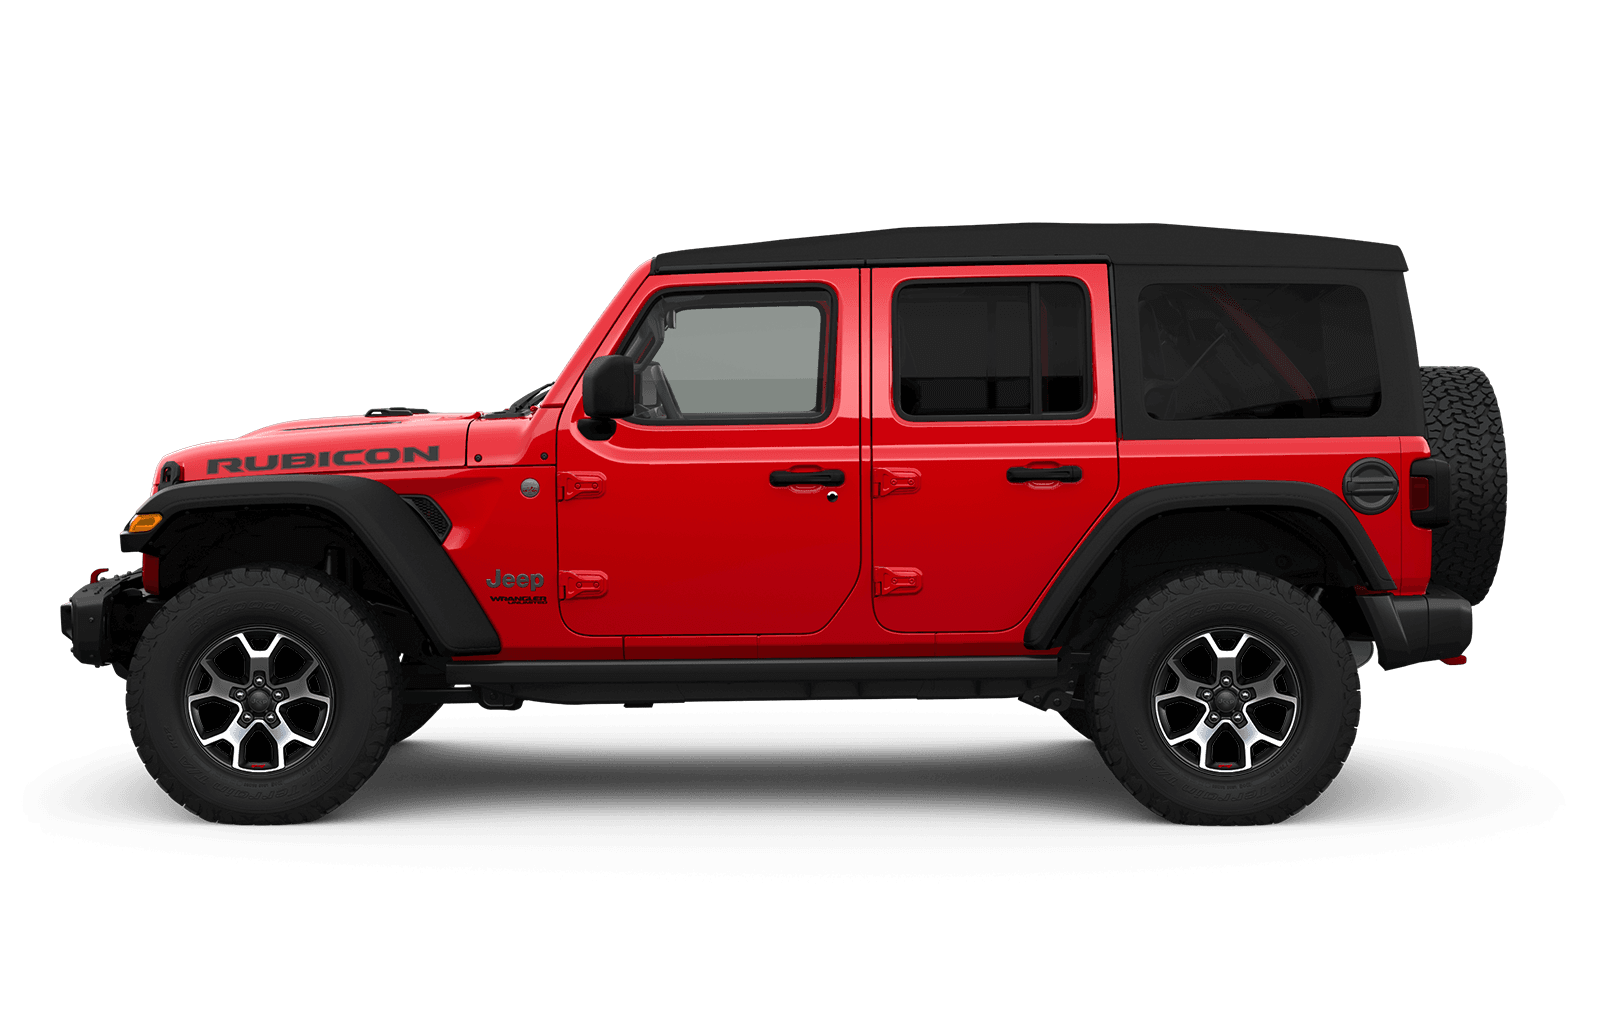 2019 Jeep Wrangler sideview with 17-inch aluminum wheel with black pockets